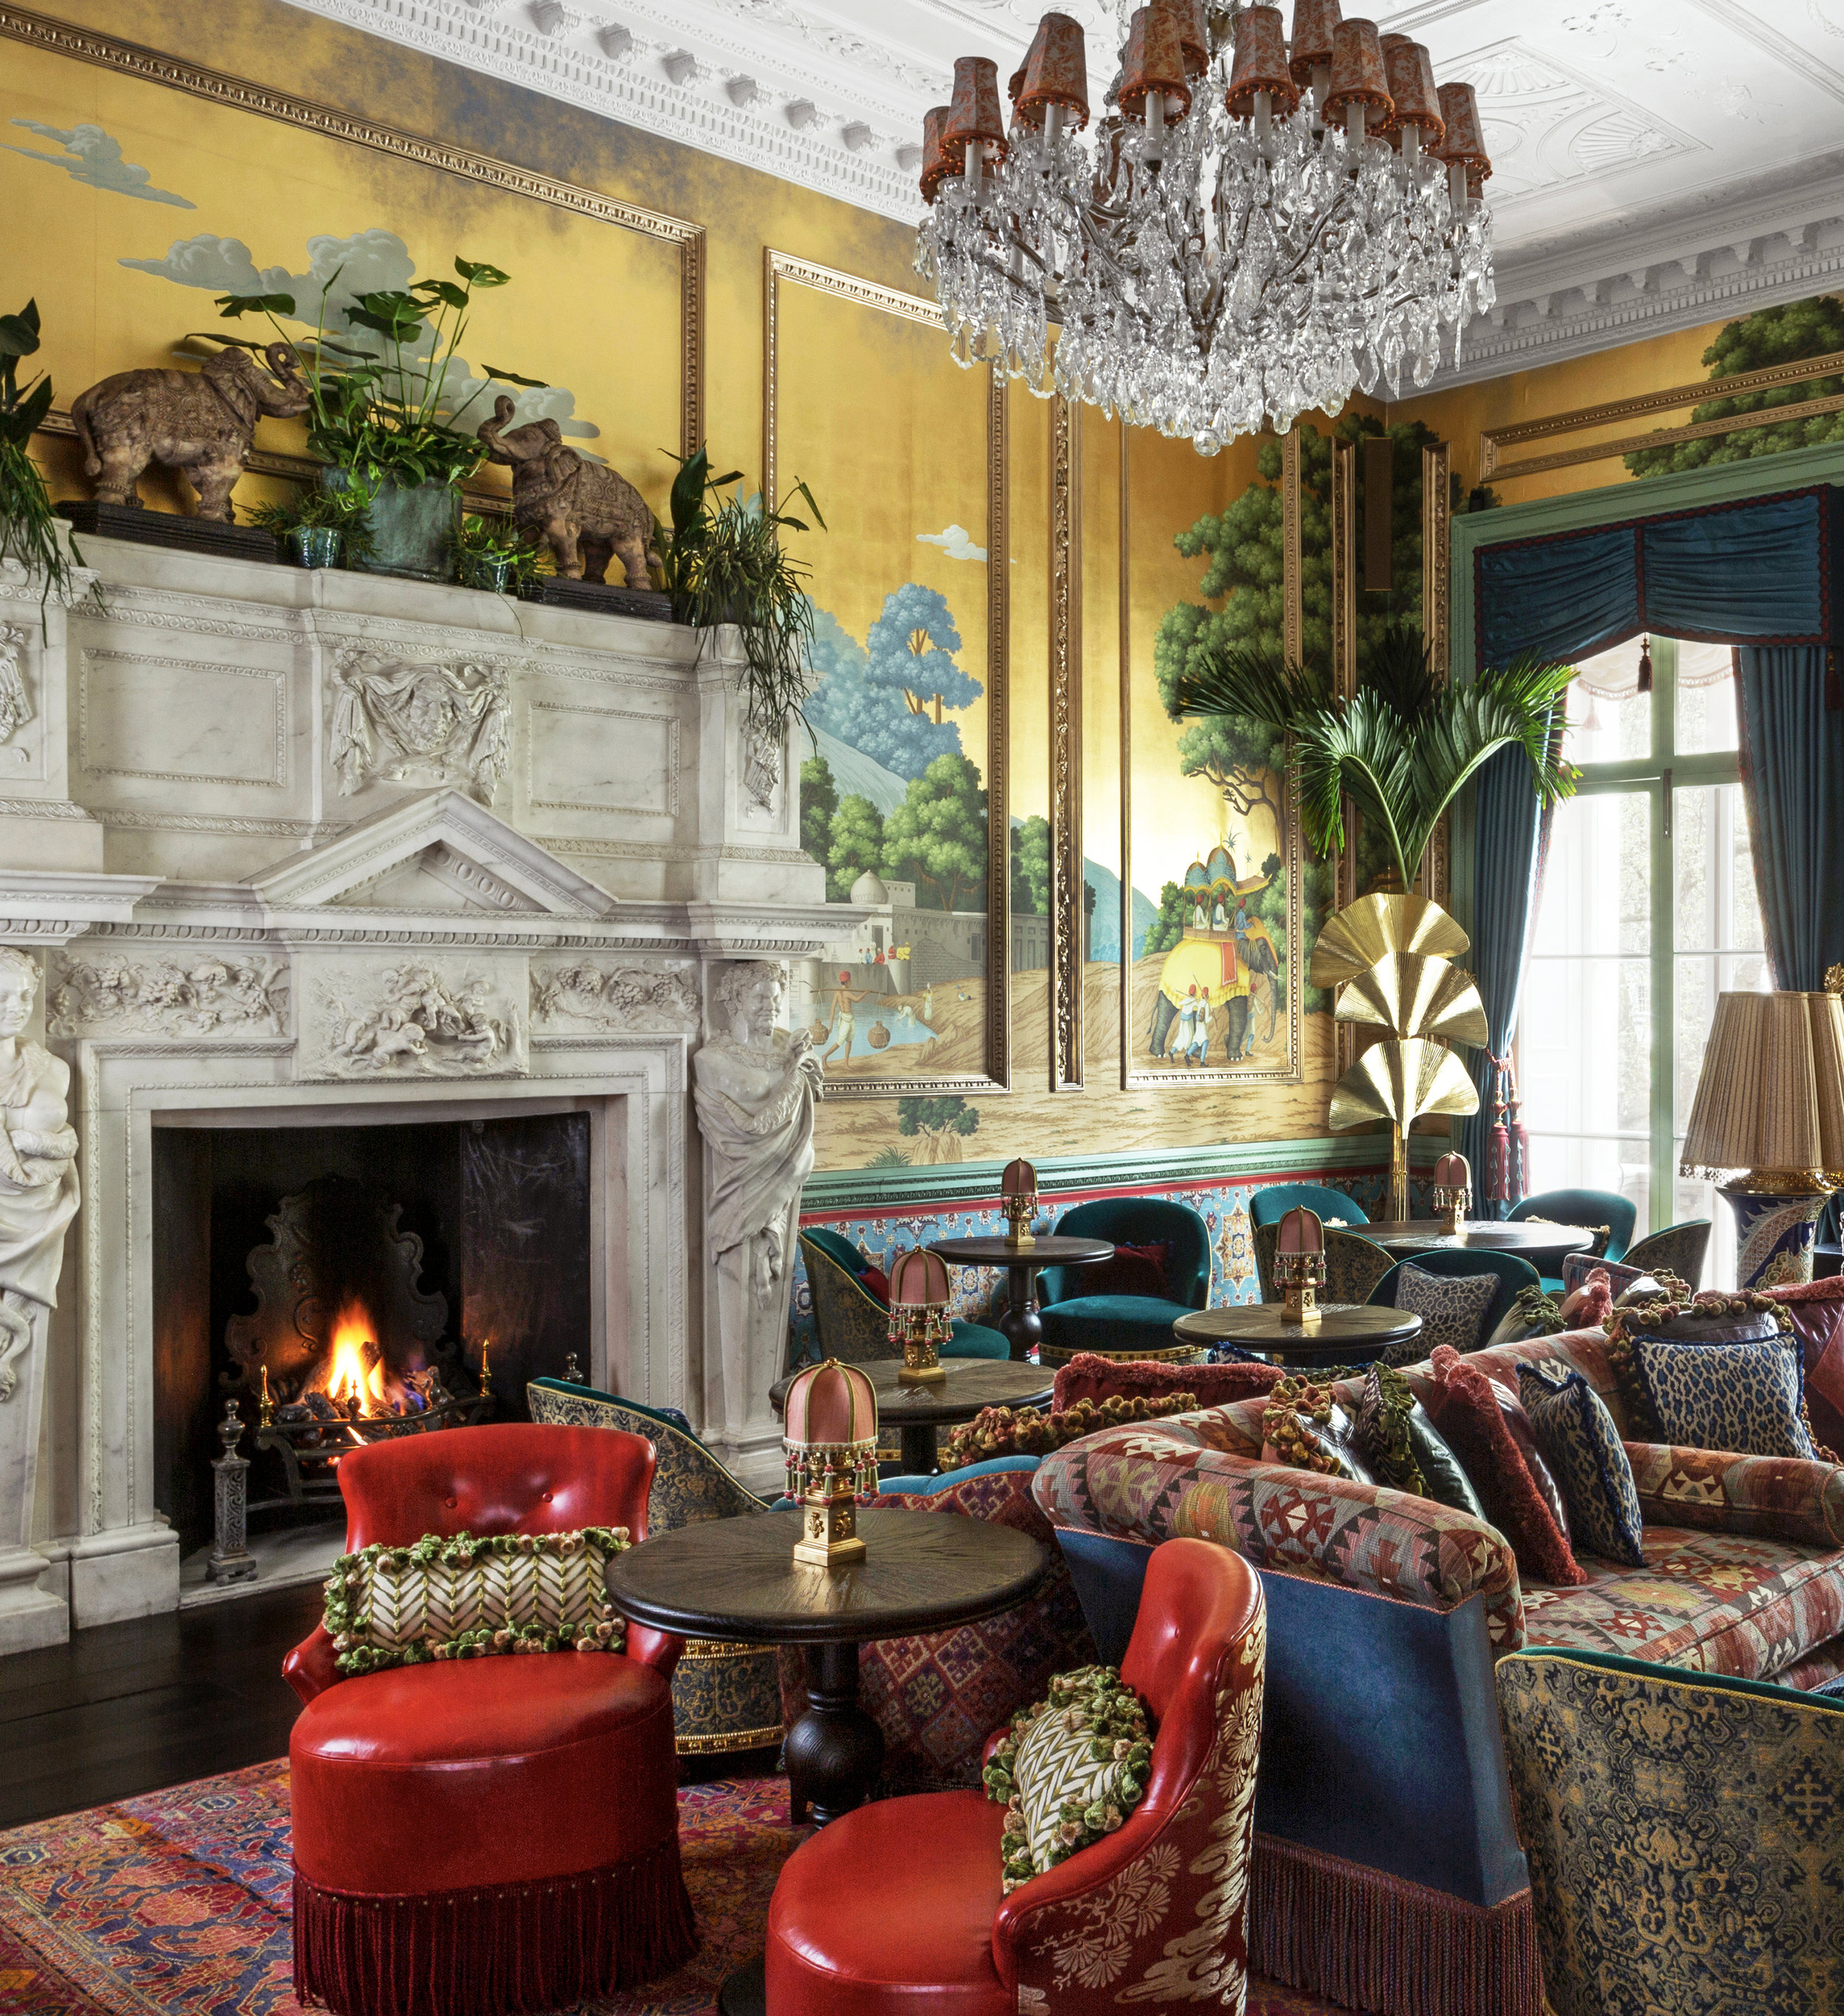 Early Views of India on Deep Rich Gold. Interior by Martin Brudnizki. Photo by James McDonald